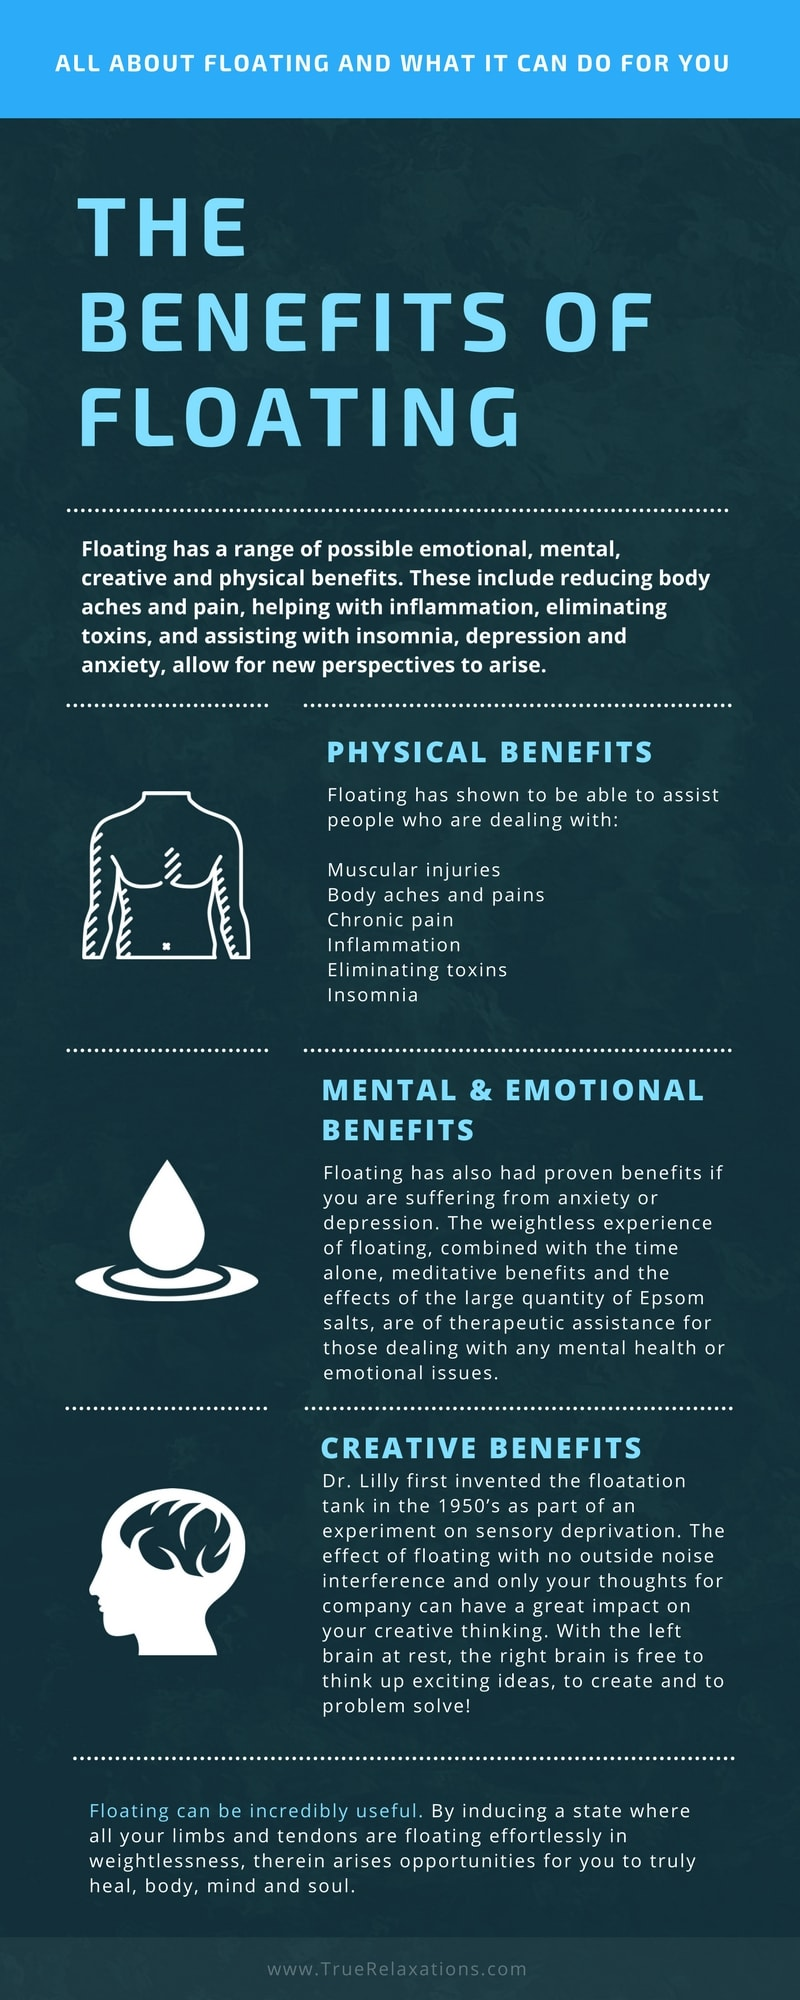 the benefits of floating (physical, mental, emotional and creative)